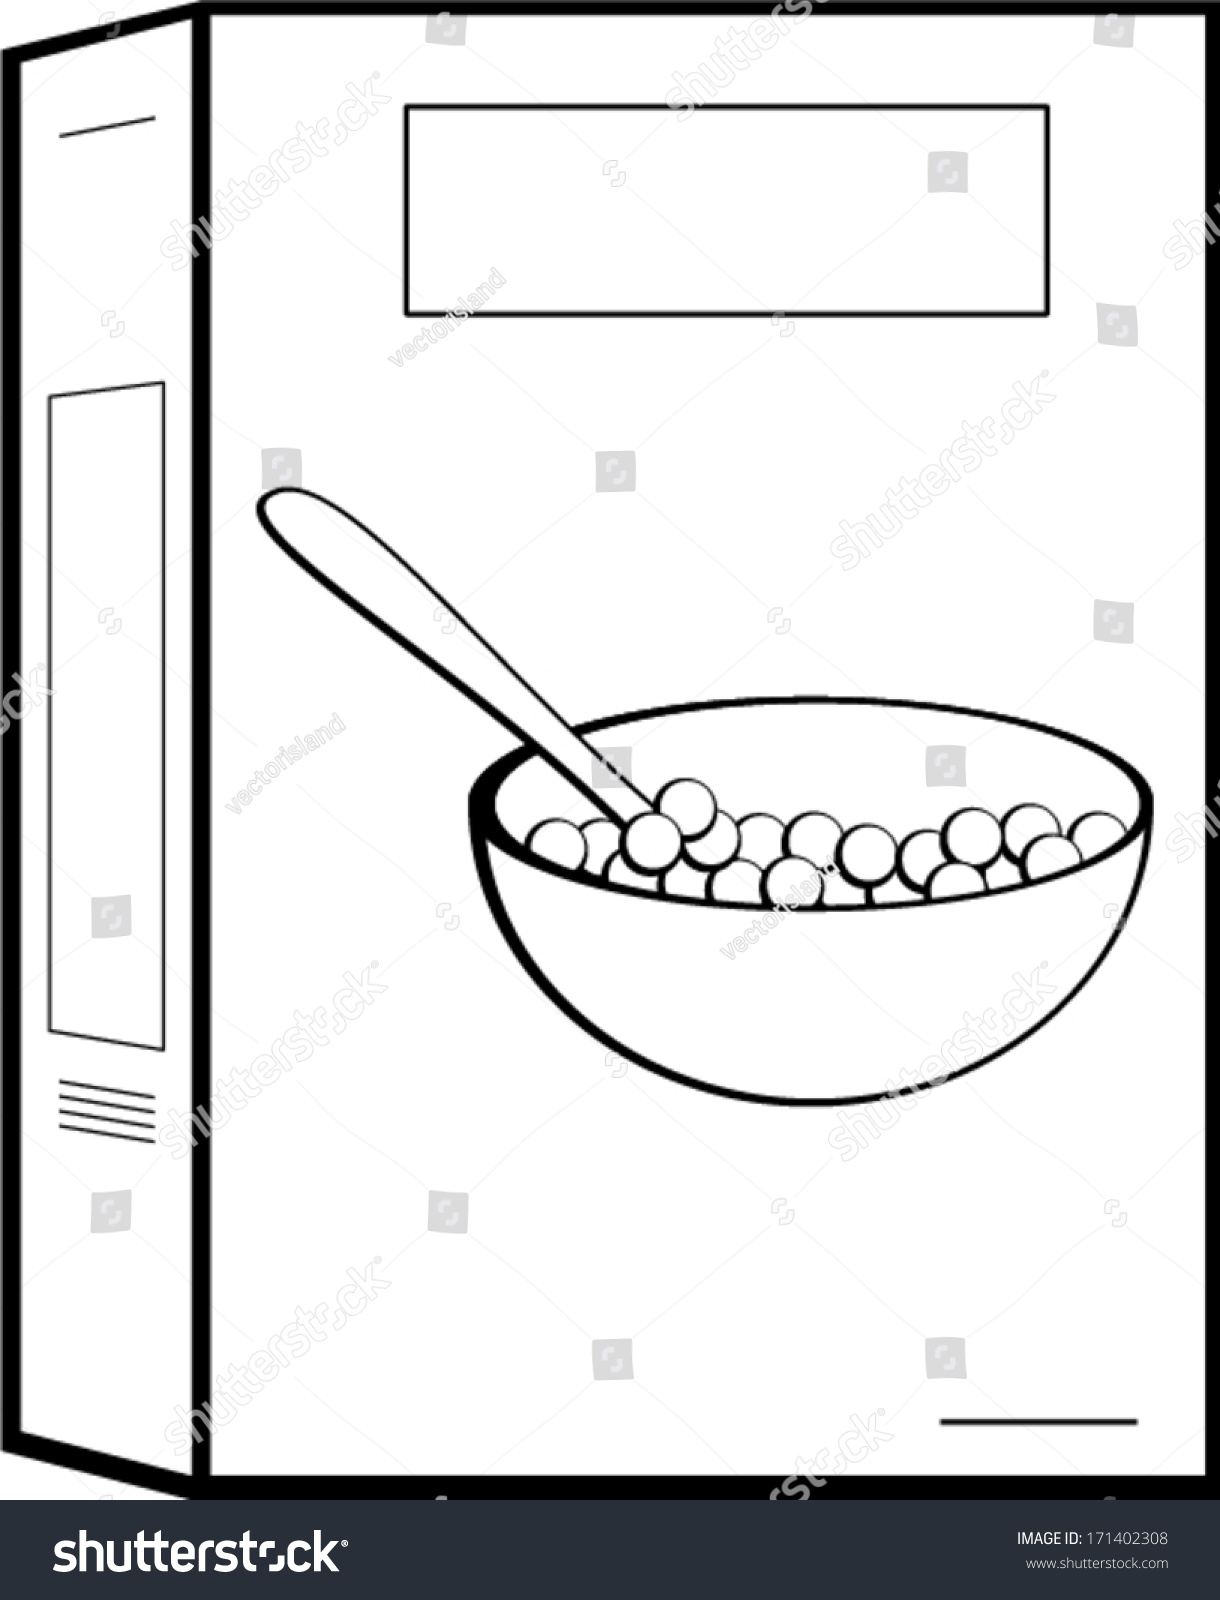 Cereal clipart boxed.  images of art